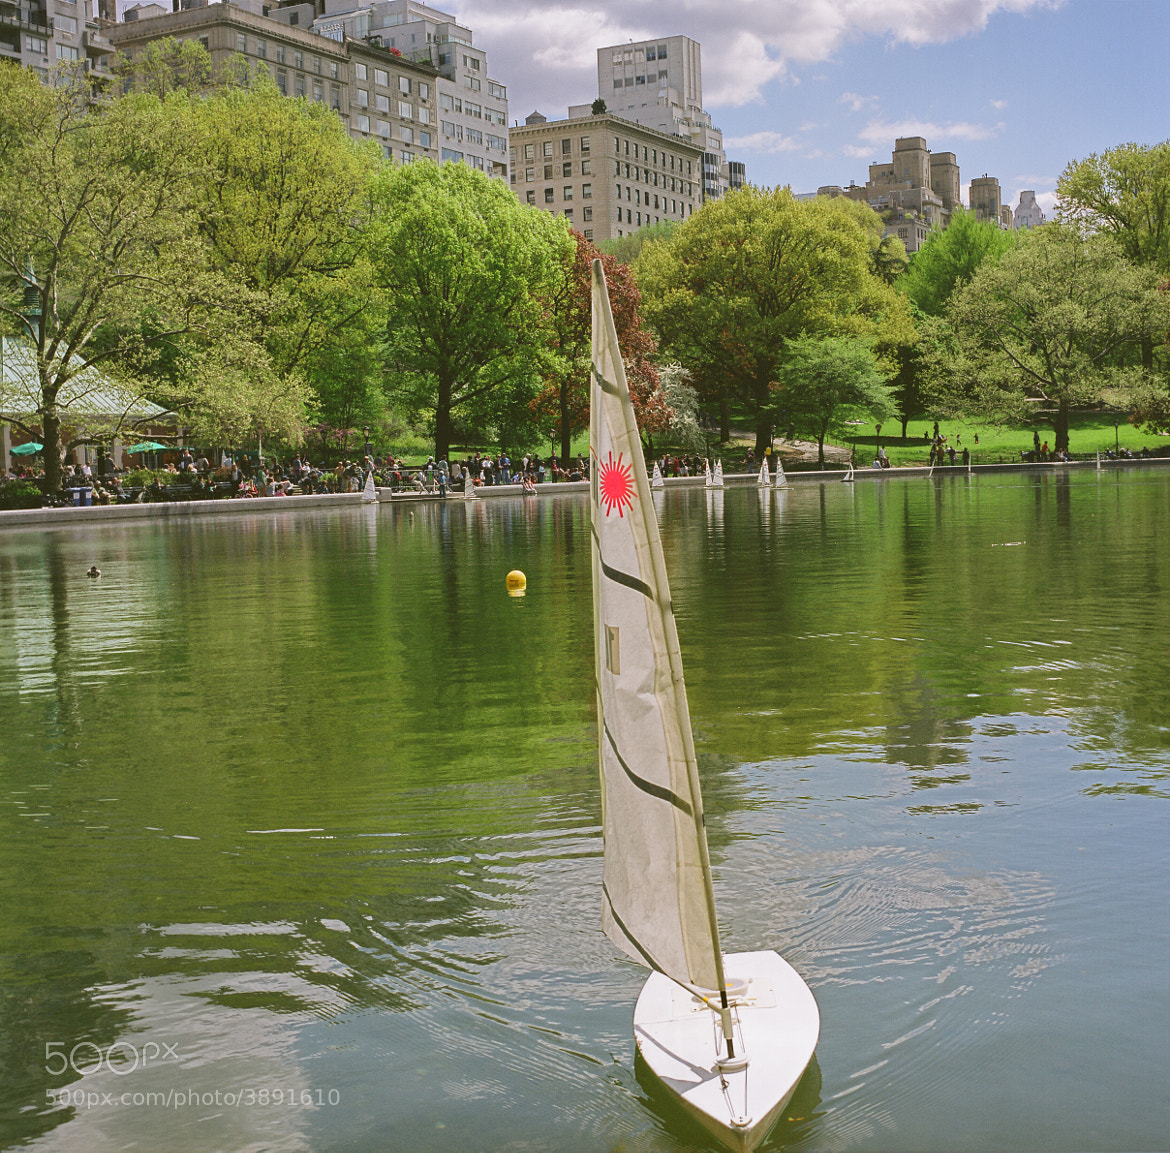 Photograph Boat on the Conservatory Water - Central Park, New York by Brad Tito on 500px